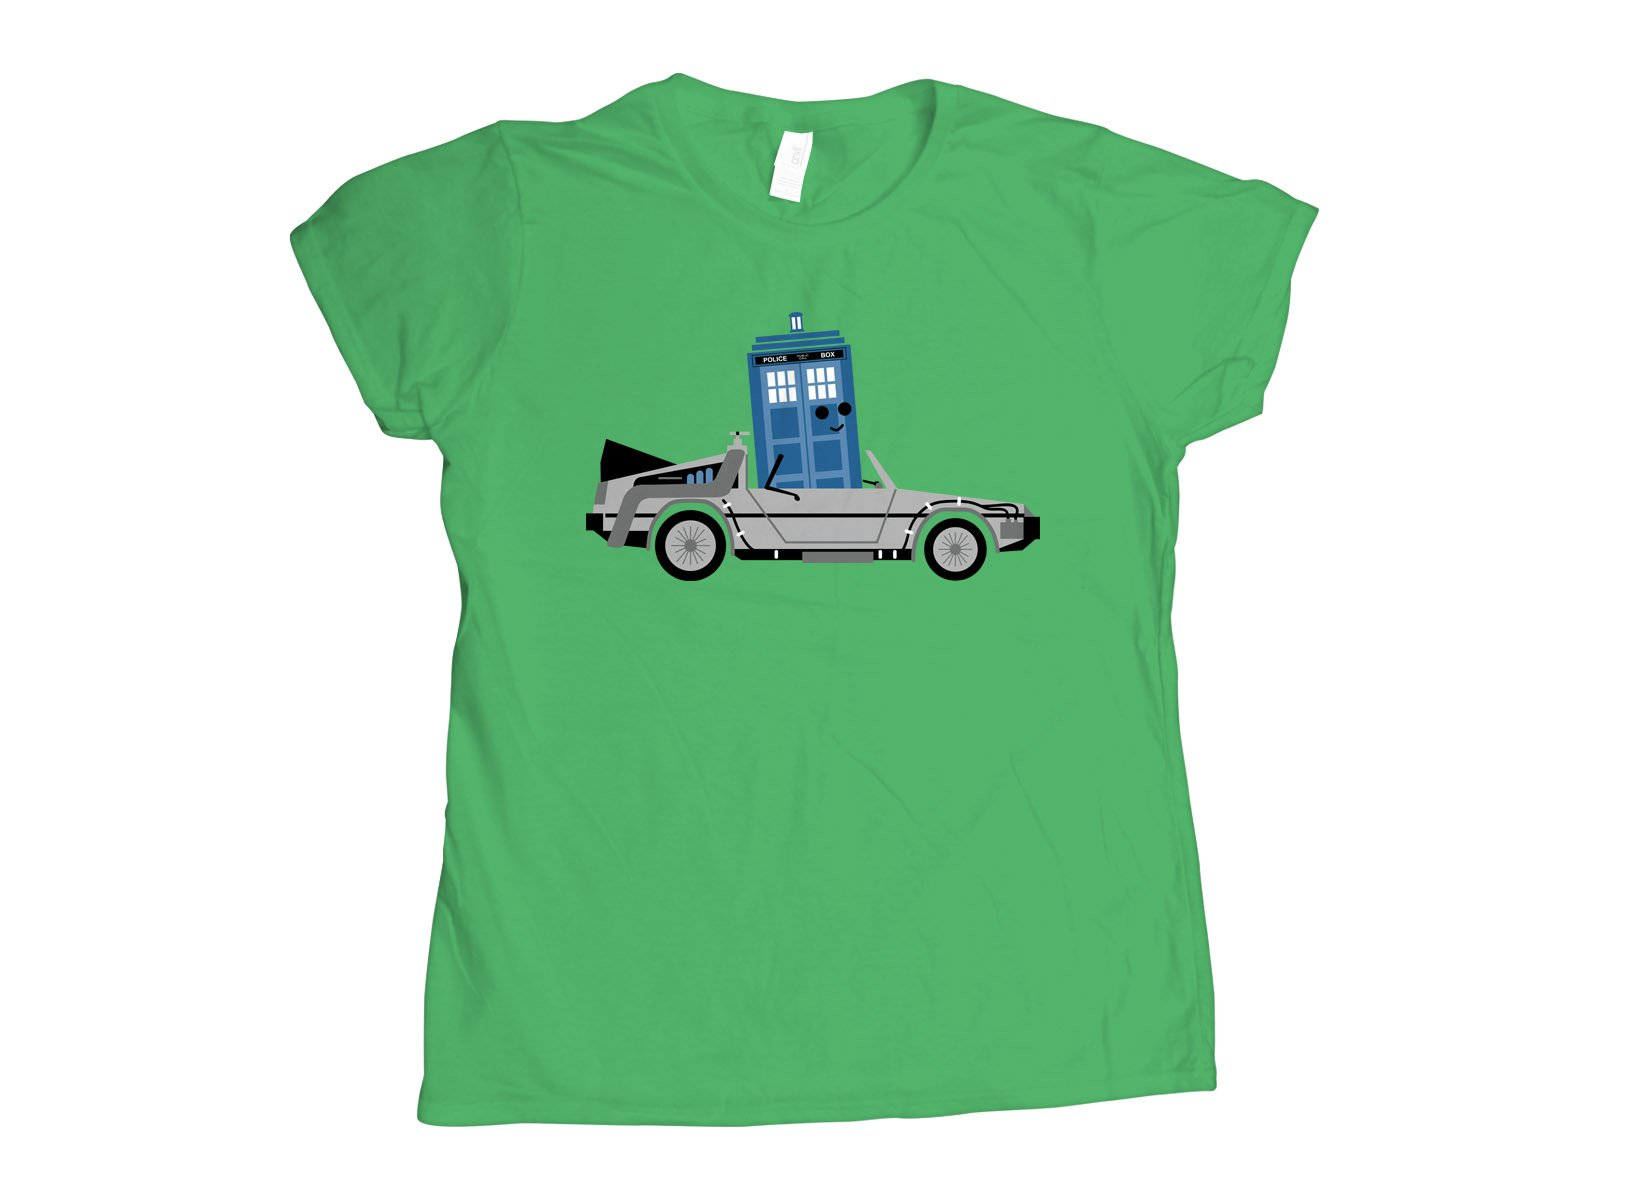 Time Machine x Two on Womens T-Shirt